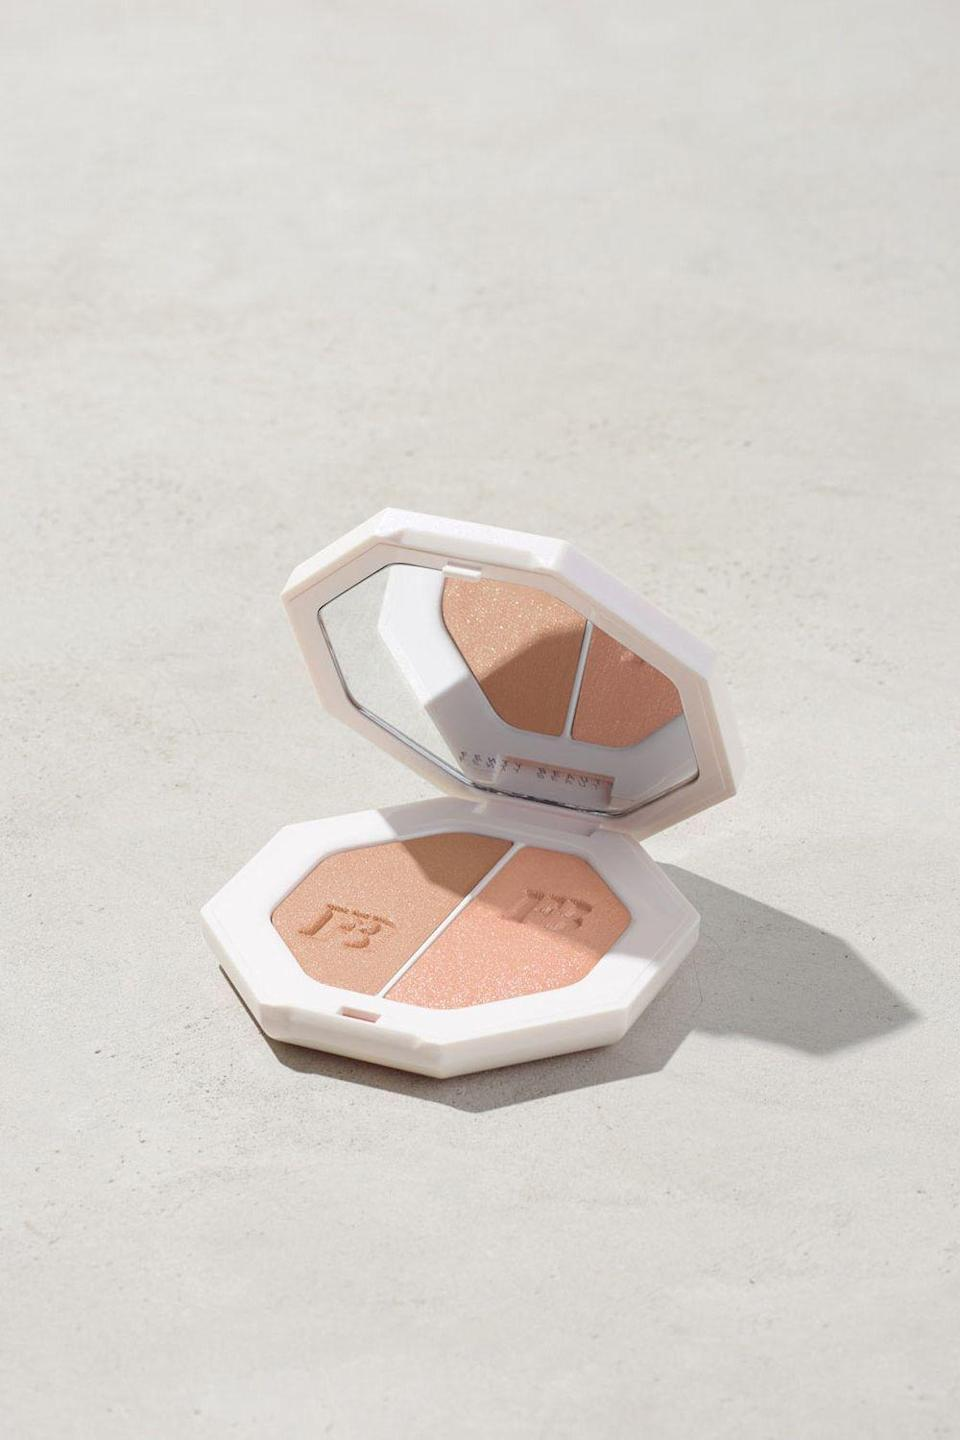 """<p><strong>Fenty Beauty</strong></p><p>fentybeauty.com</p><p><a href=""""https://go.redirectingat.com?id=74968X1596630&url=https%3A%2F%2Fwww.fentybeauty.com%2Fkillawatt-freestyle-highlighter%2FFB30002.html%3Fdwvar_FB30002_color%3DFB3004%26cgid%3Dmakeup-blush&sref=https%3A%2F%2Fwww.cosmopolitan.com%2Fstyle-beauty%2Fbeauty%2Fg34399952%2Ffenty-beauty-sale-october-2020%2F"""" rel=""""nofollow noopener"""" target=""""_blank"""" data-ylk=""""slk:SHOP IT"""" class=""""link rapid-noclick-resp"""">SHOP IT </a></p><p><strong><del>$36 </del>$24.30 (33% off)</strong></p><p>This lightweight highlighter will give your face that extra glow you've been craving. Plus, its cream-based formula is designed to last all day long.</p>"""